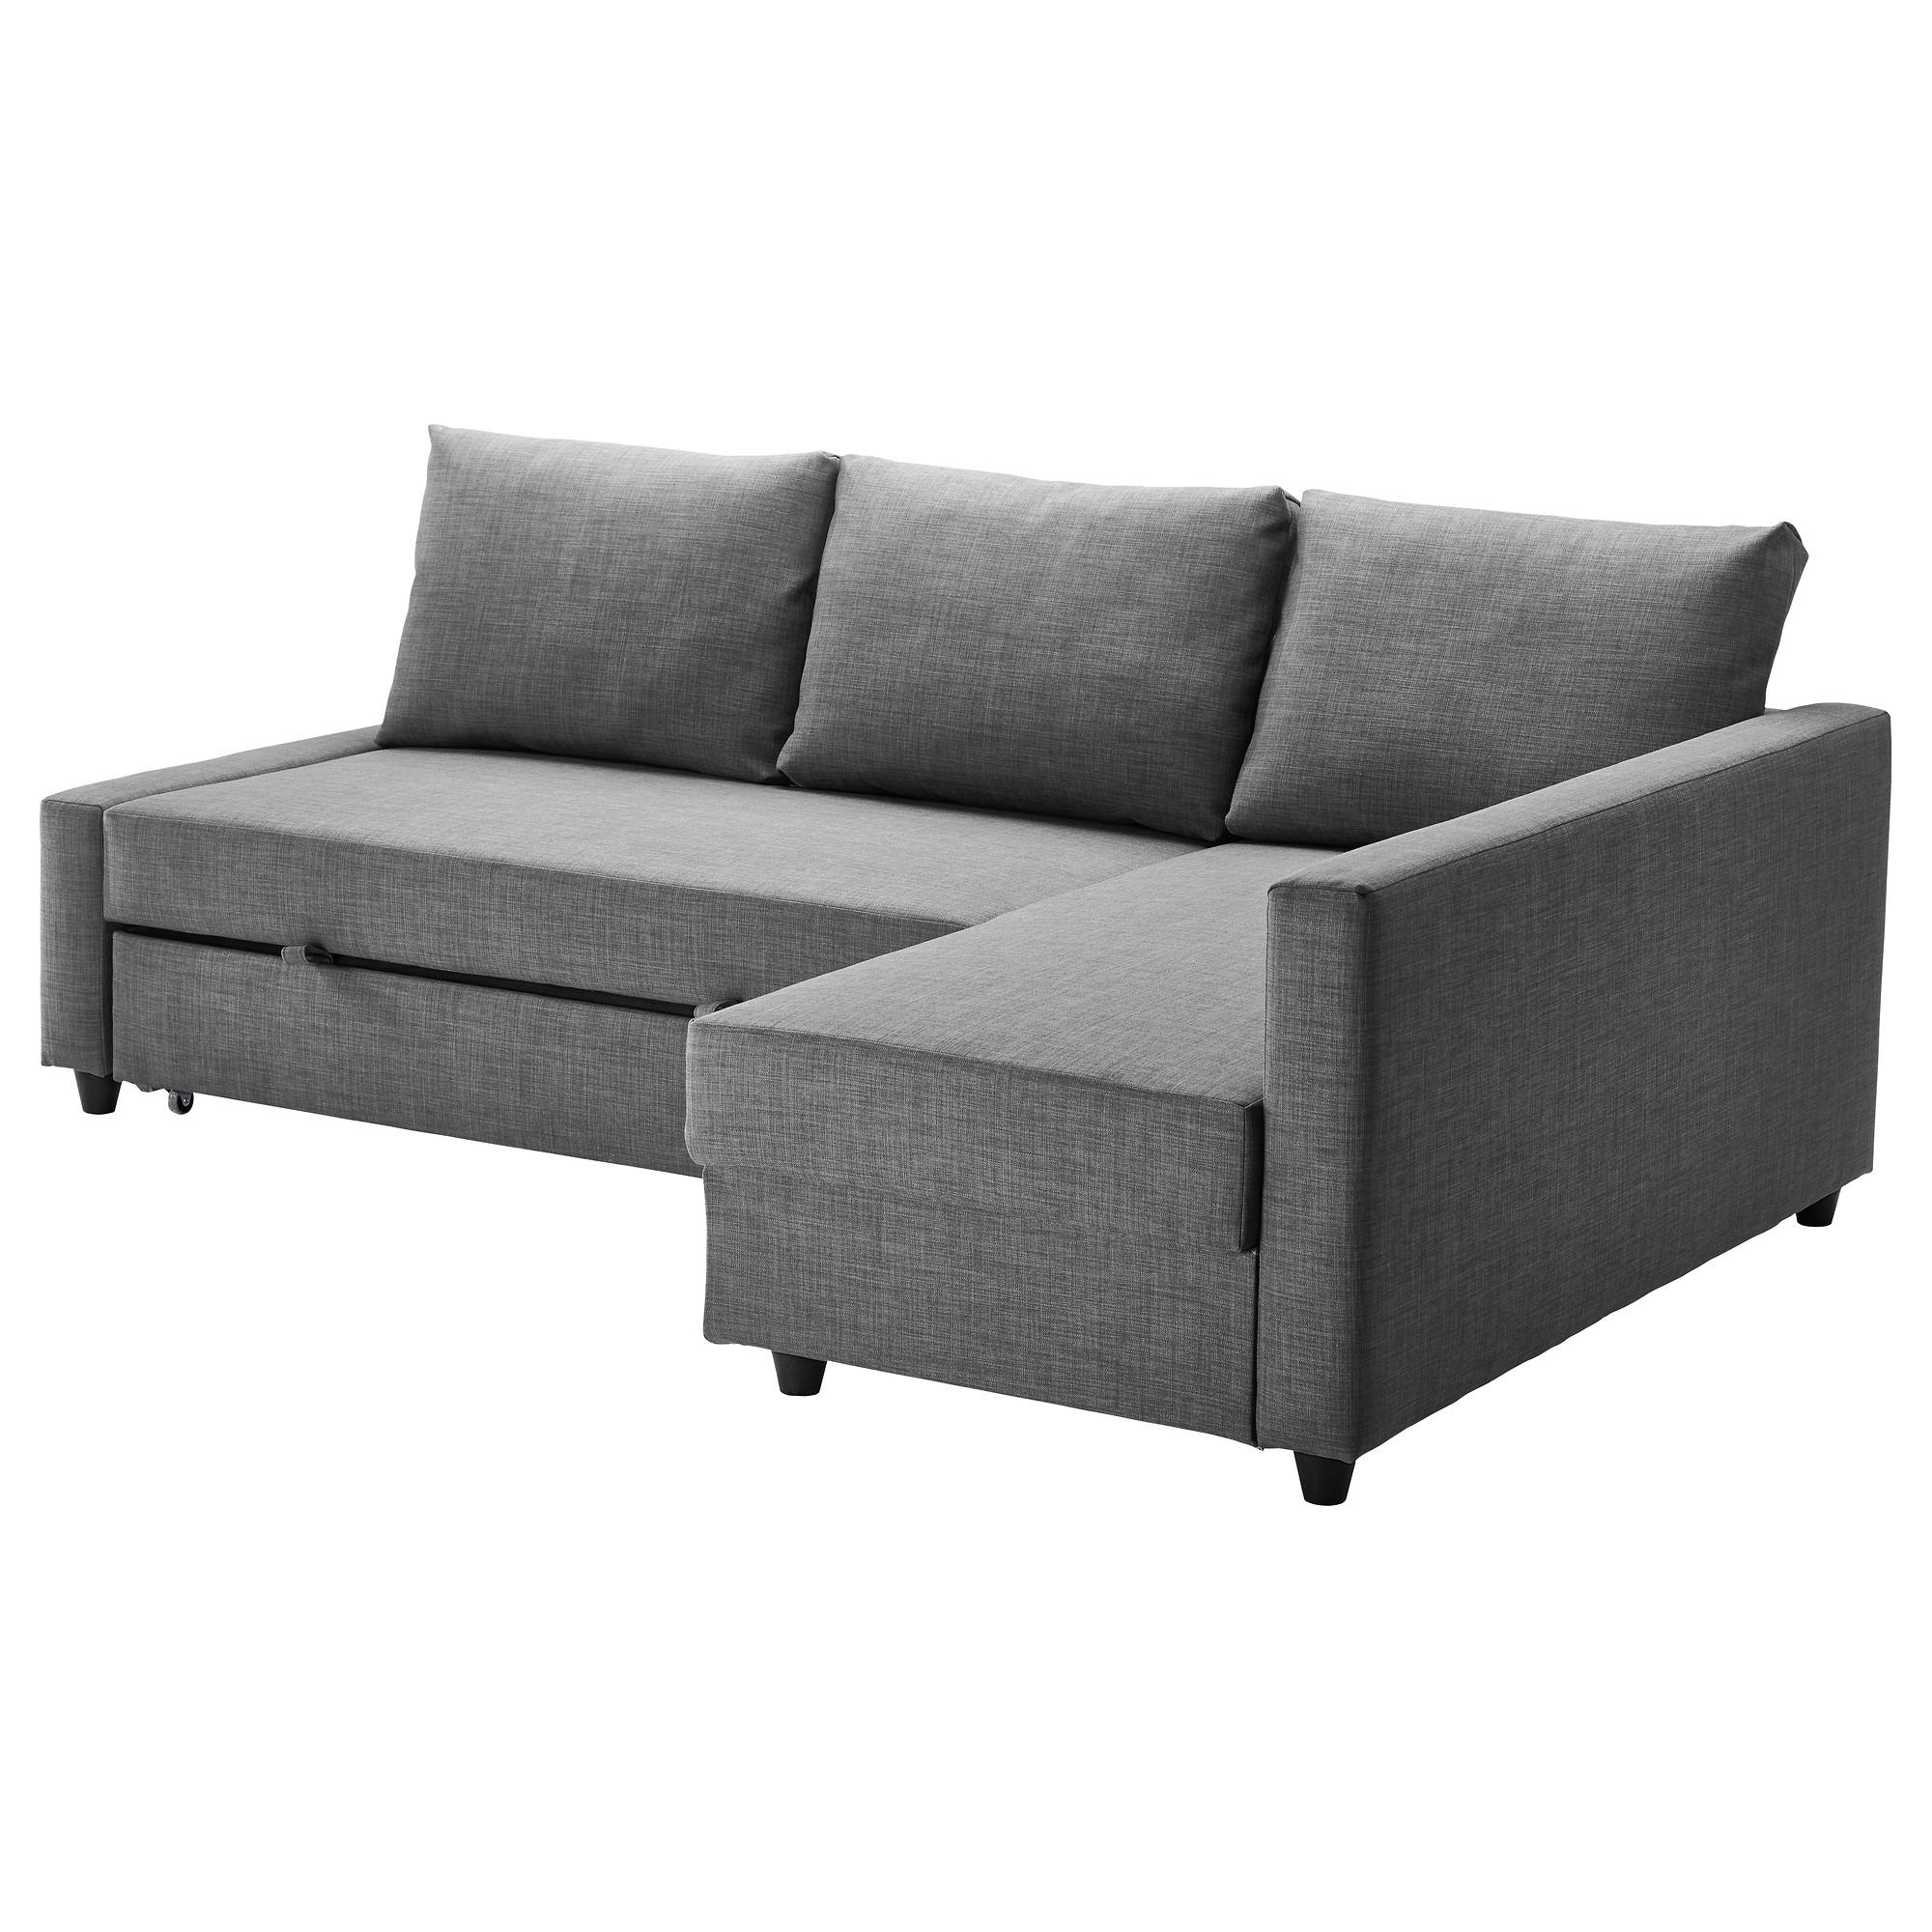 Sofa Beds & Futons – Ikea With Regard To Sectional Sofa Bed With Storage (Image 15 of 20)